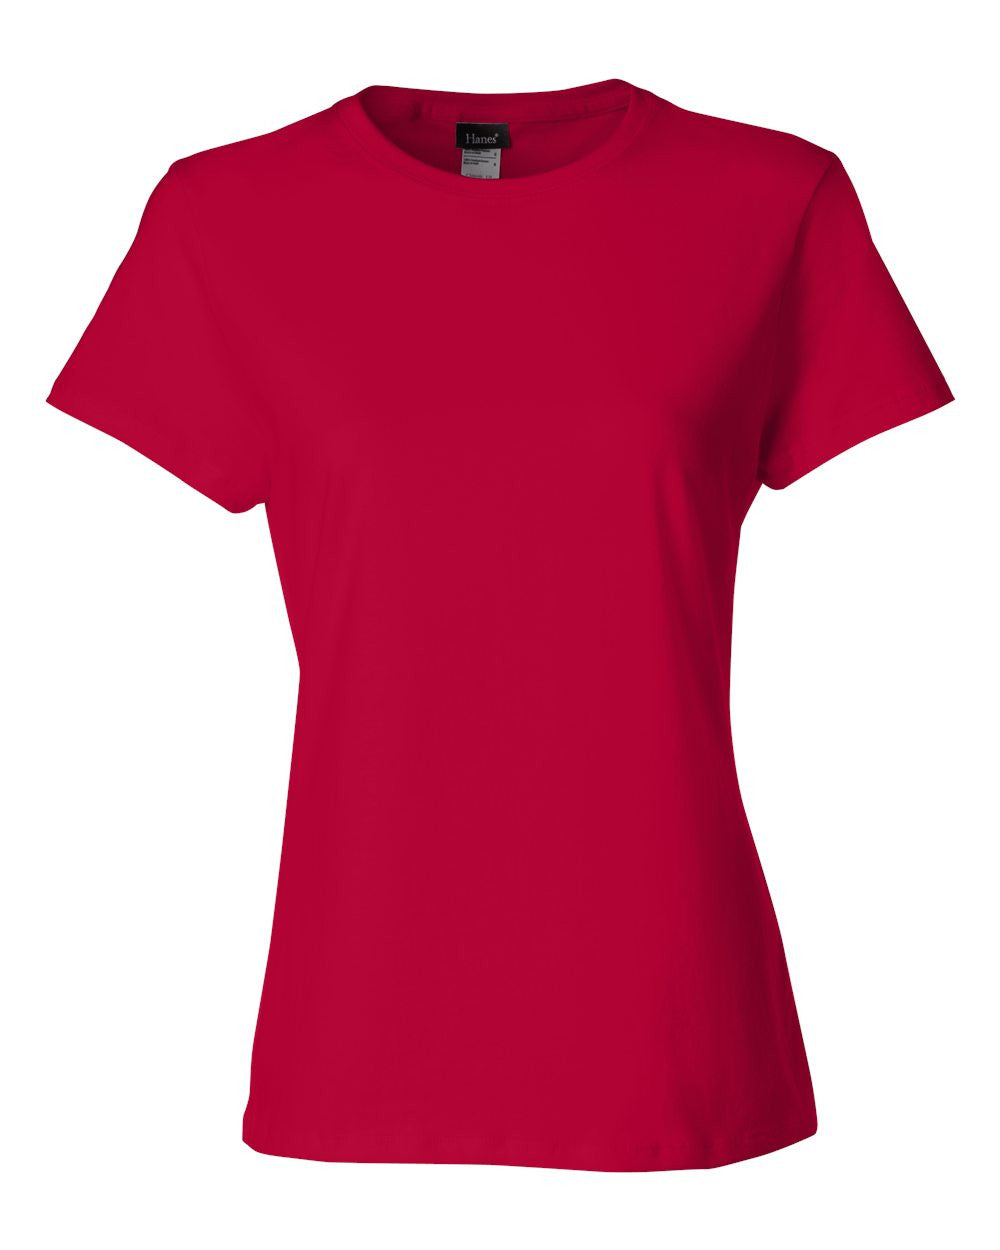 Nano-T Women's T-Shirt by Hanes